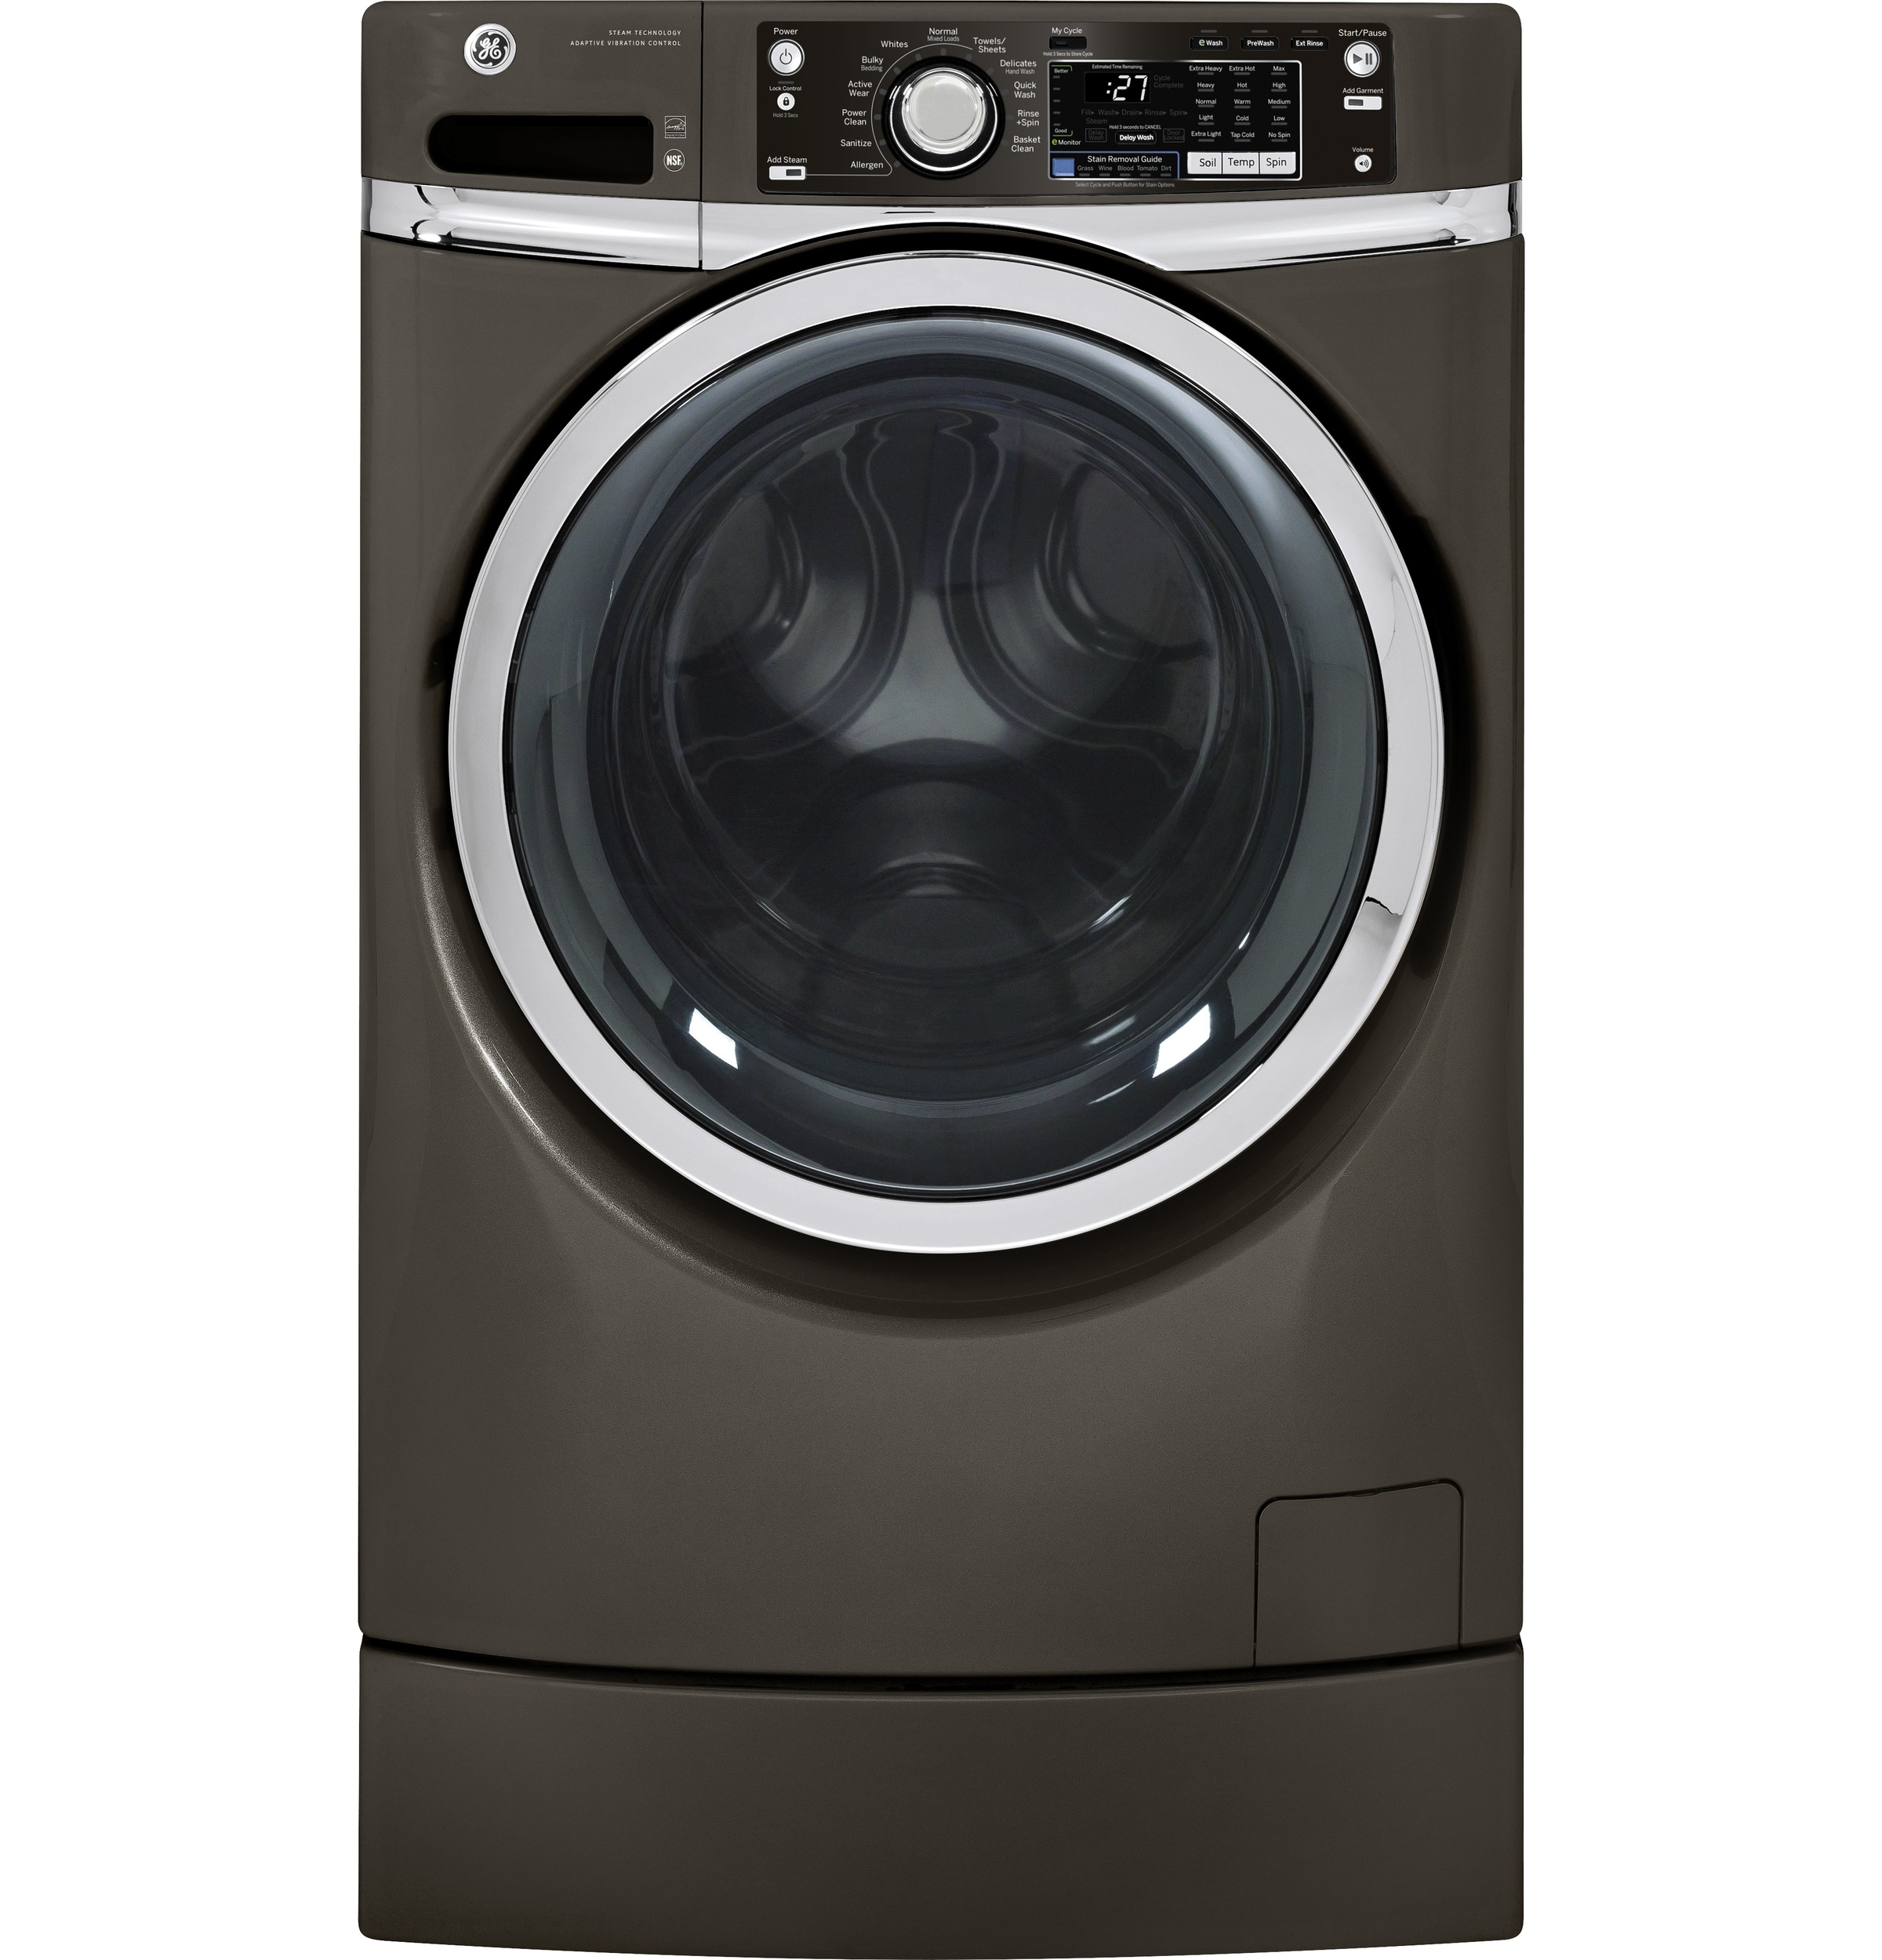 energy star clothes washer rebate application